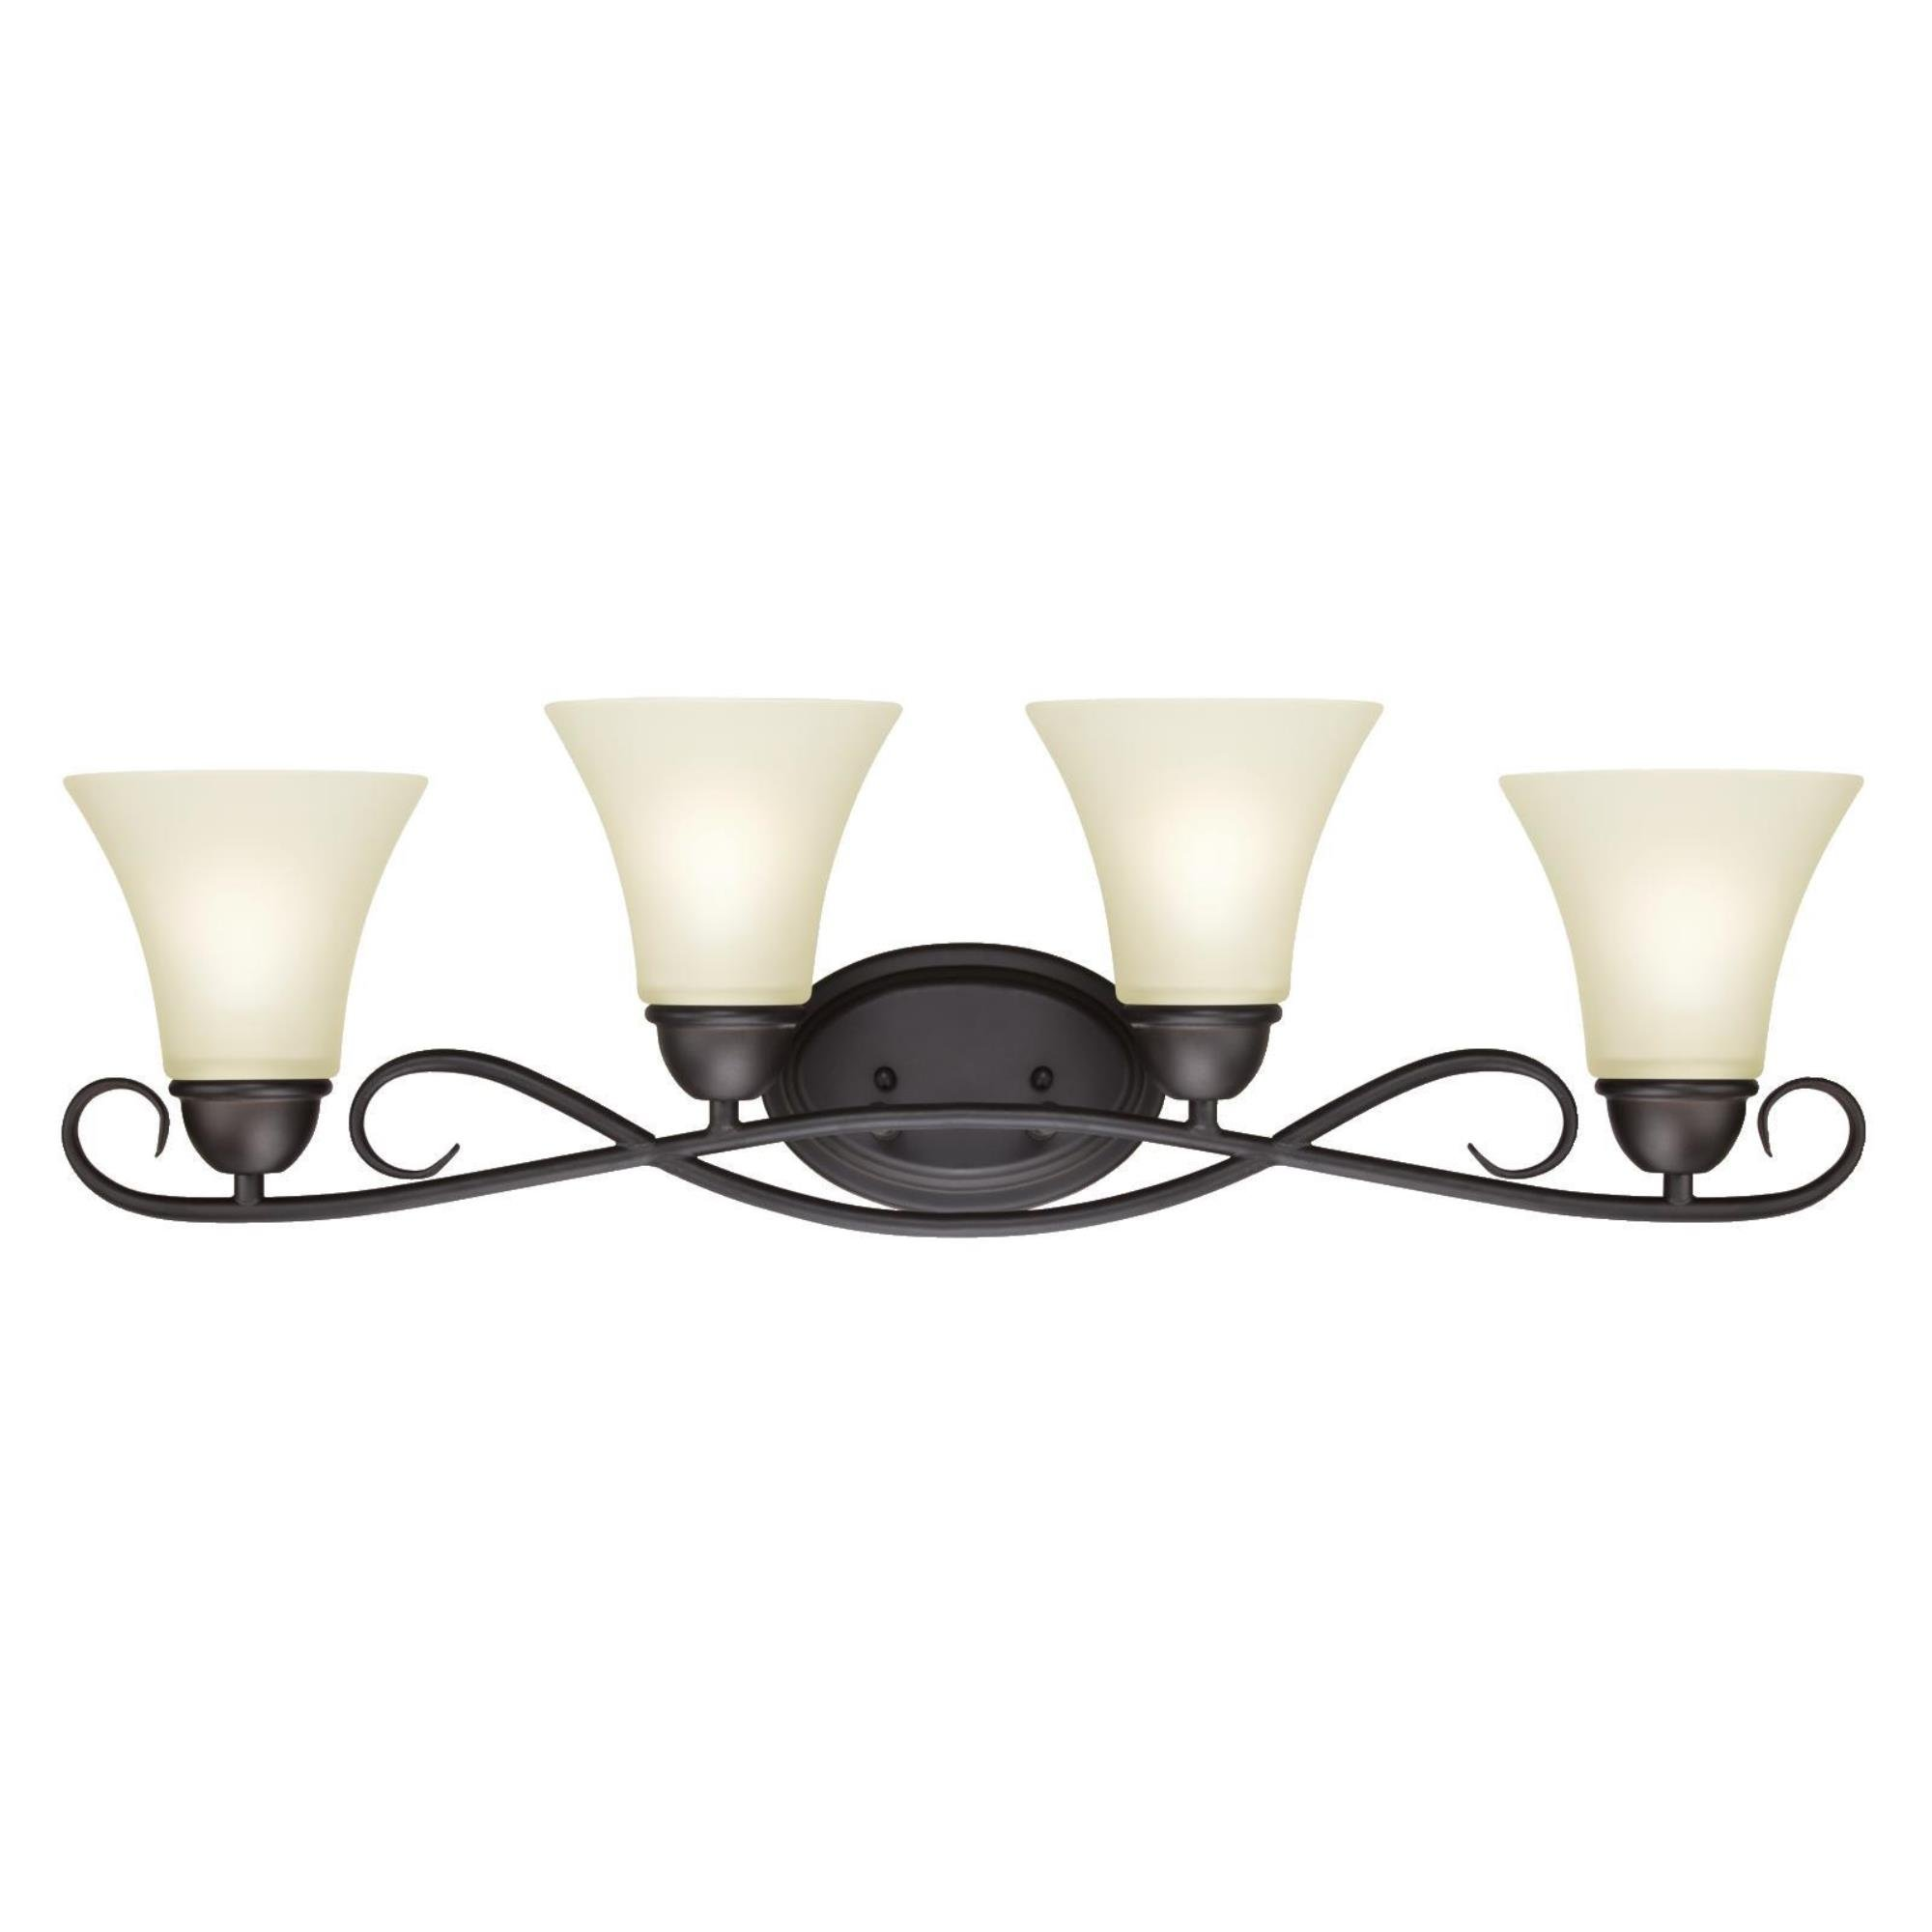 6307000 Dunmore Four-Light Indoor Wall Fixture, Oil Rubbed Bronze Finish with Frosted Glass